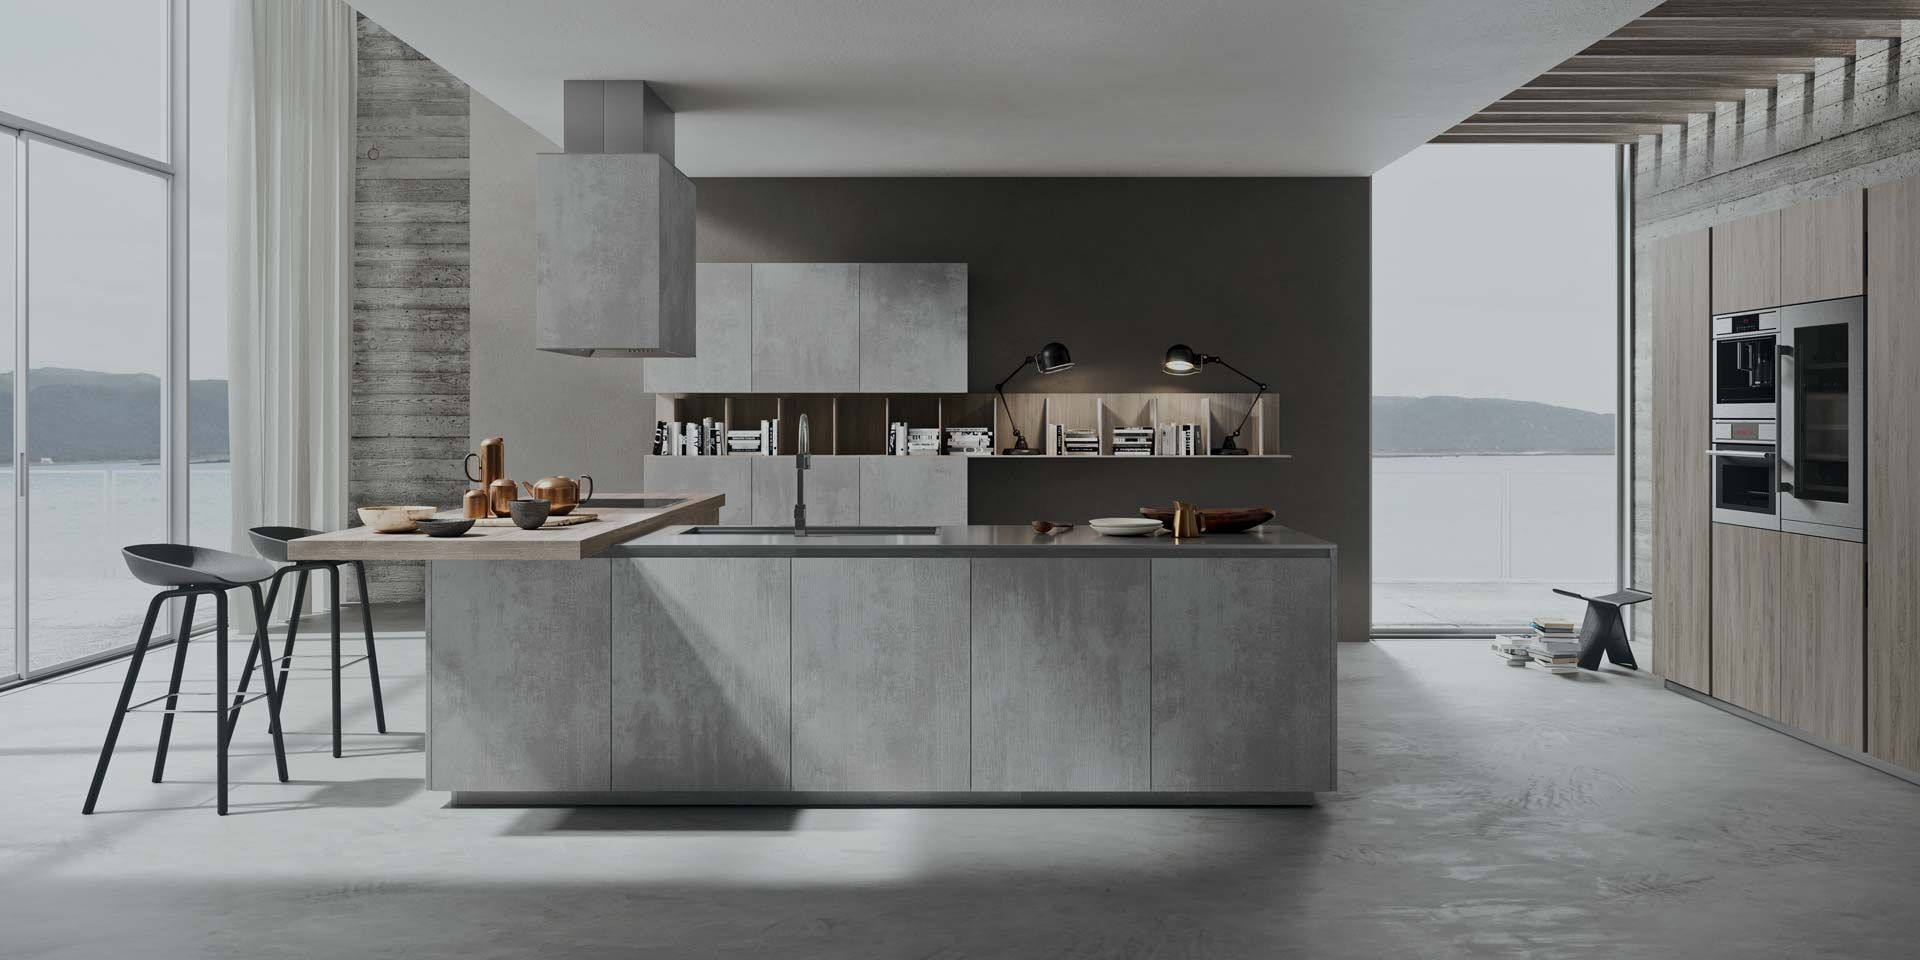 Modern Affordable Italian Kitchen Collection 2 1 By Copatlife